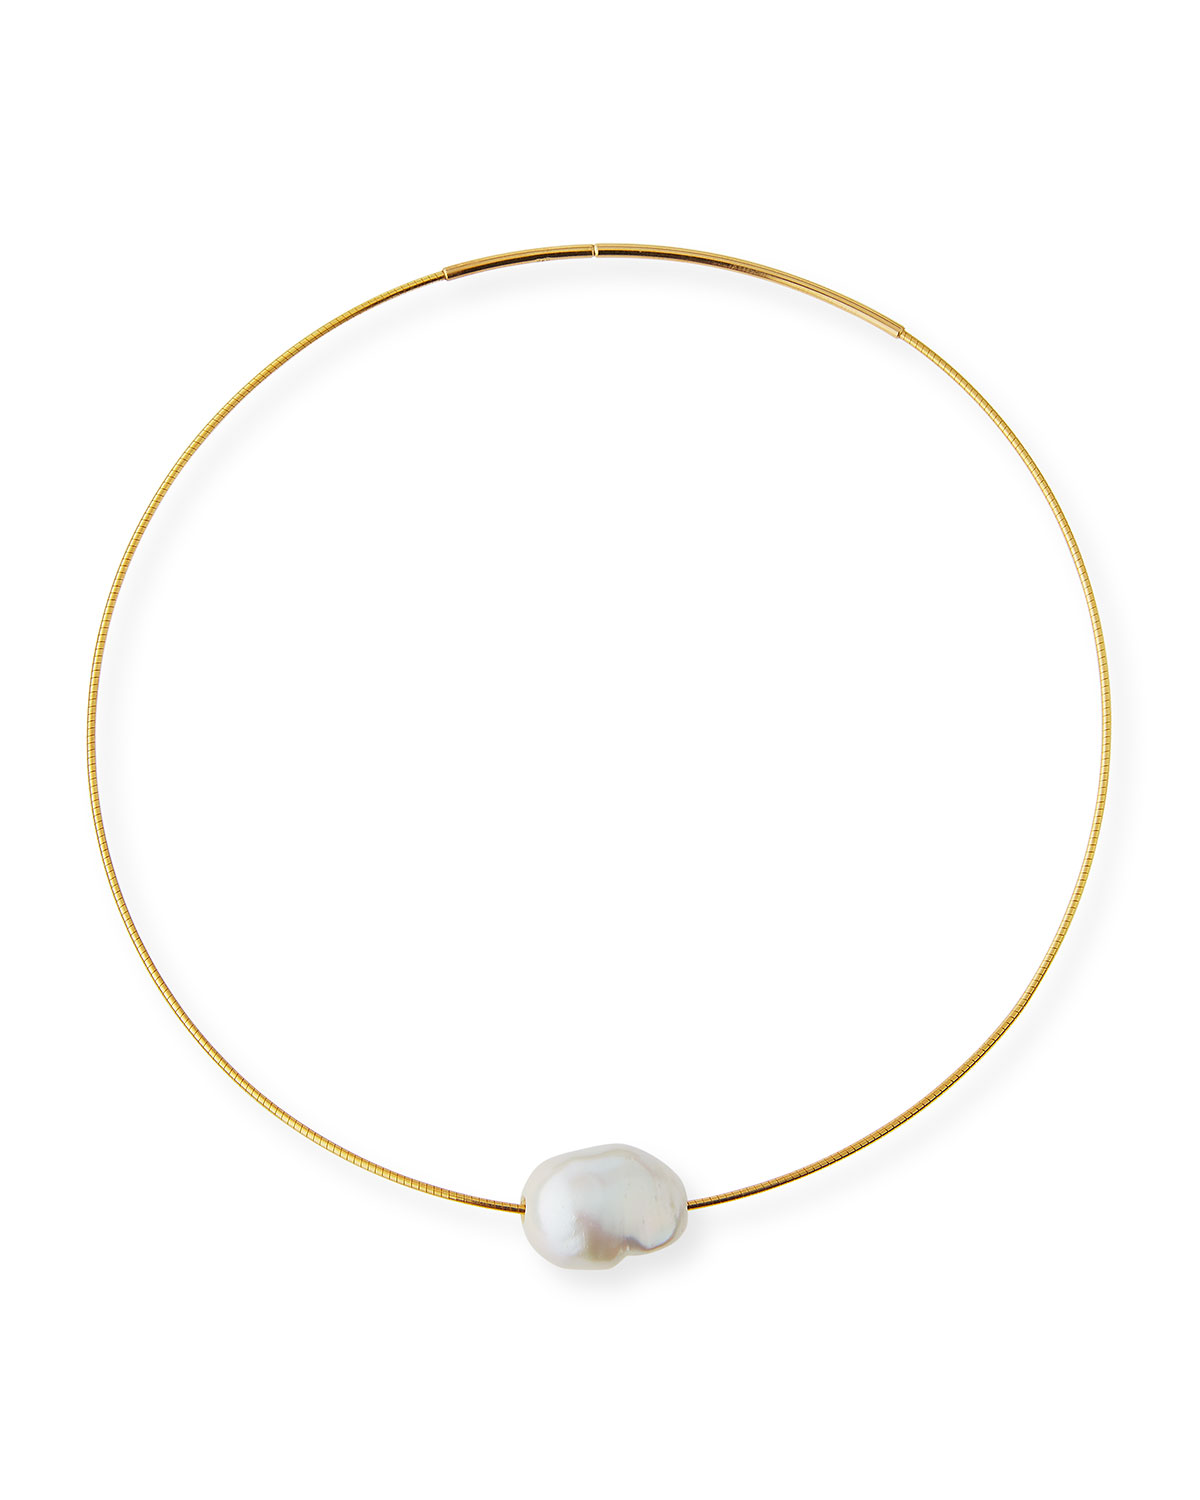 cce4741bb5b92 Baroque Pearl Choker Necklace